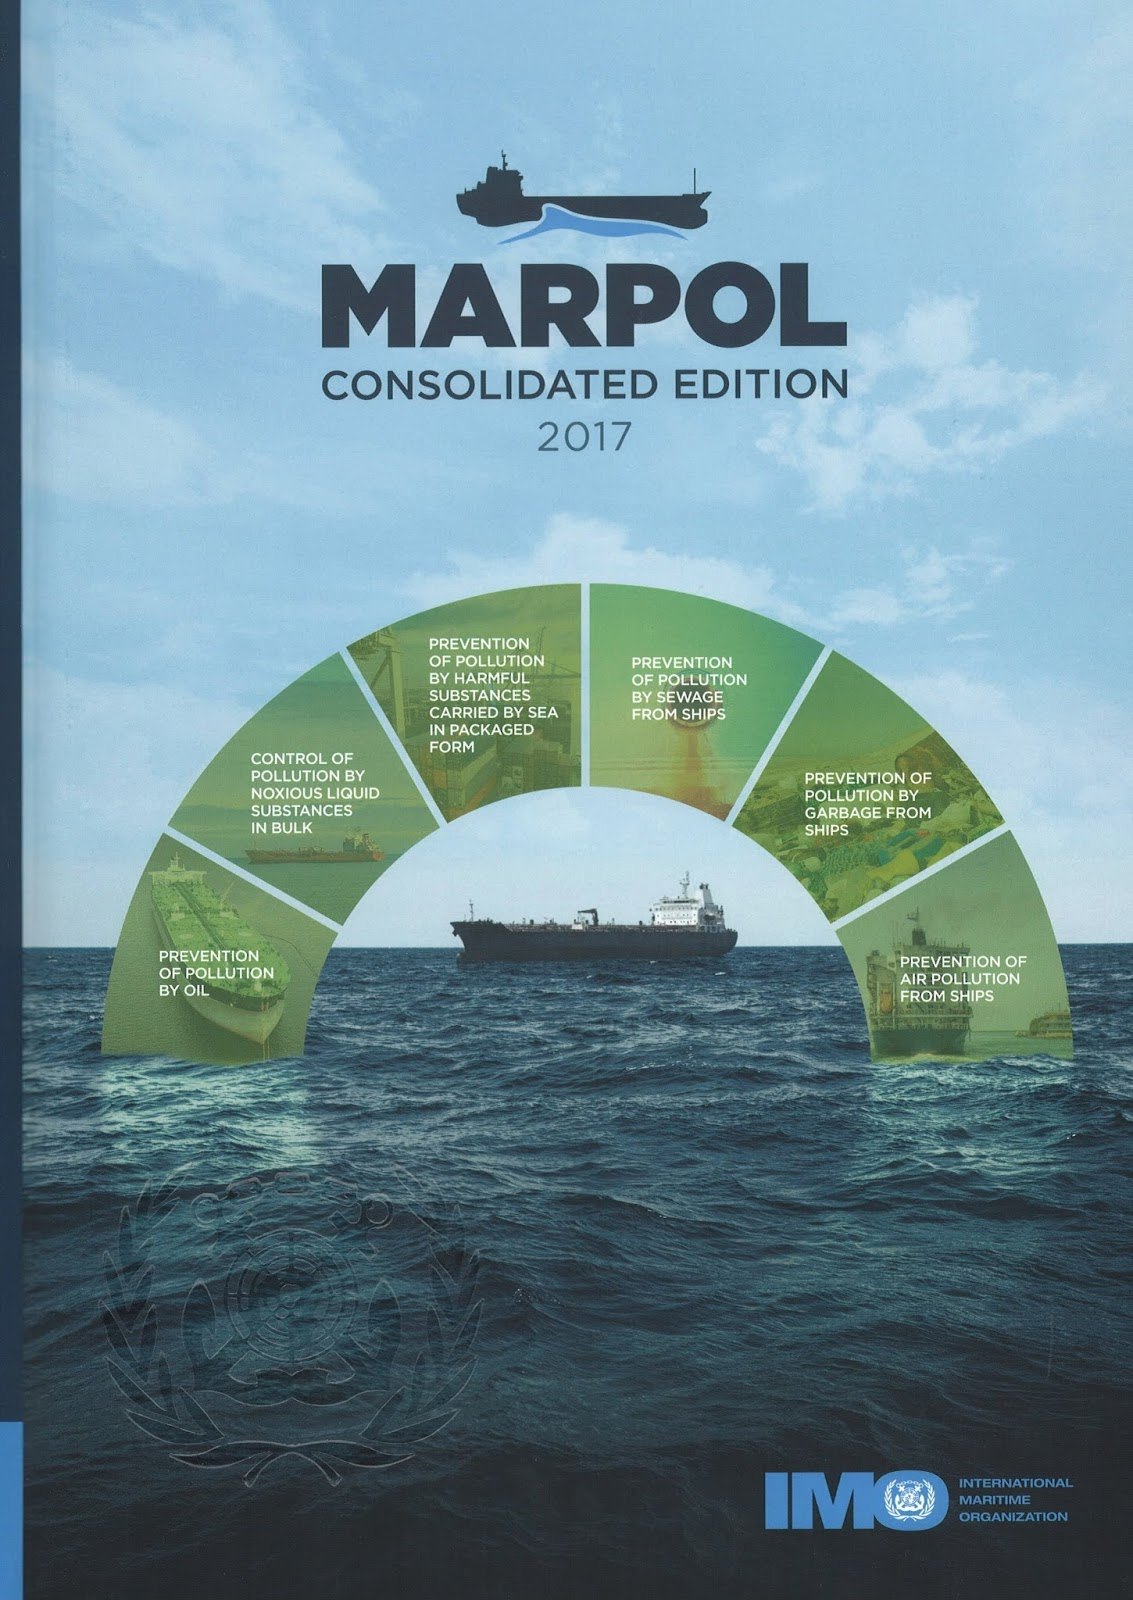 MARINE AND MARITIME TECHNOLOGY: SUMMARY OF MARPOL